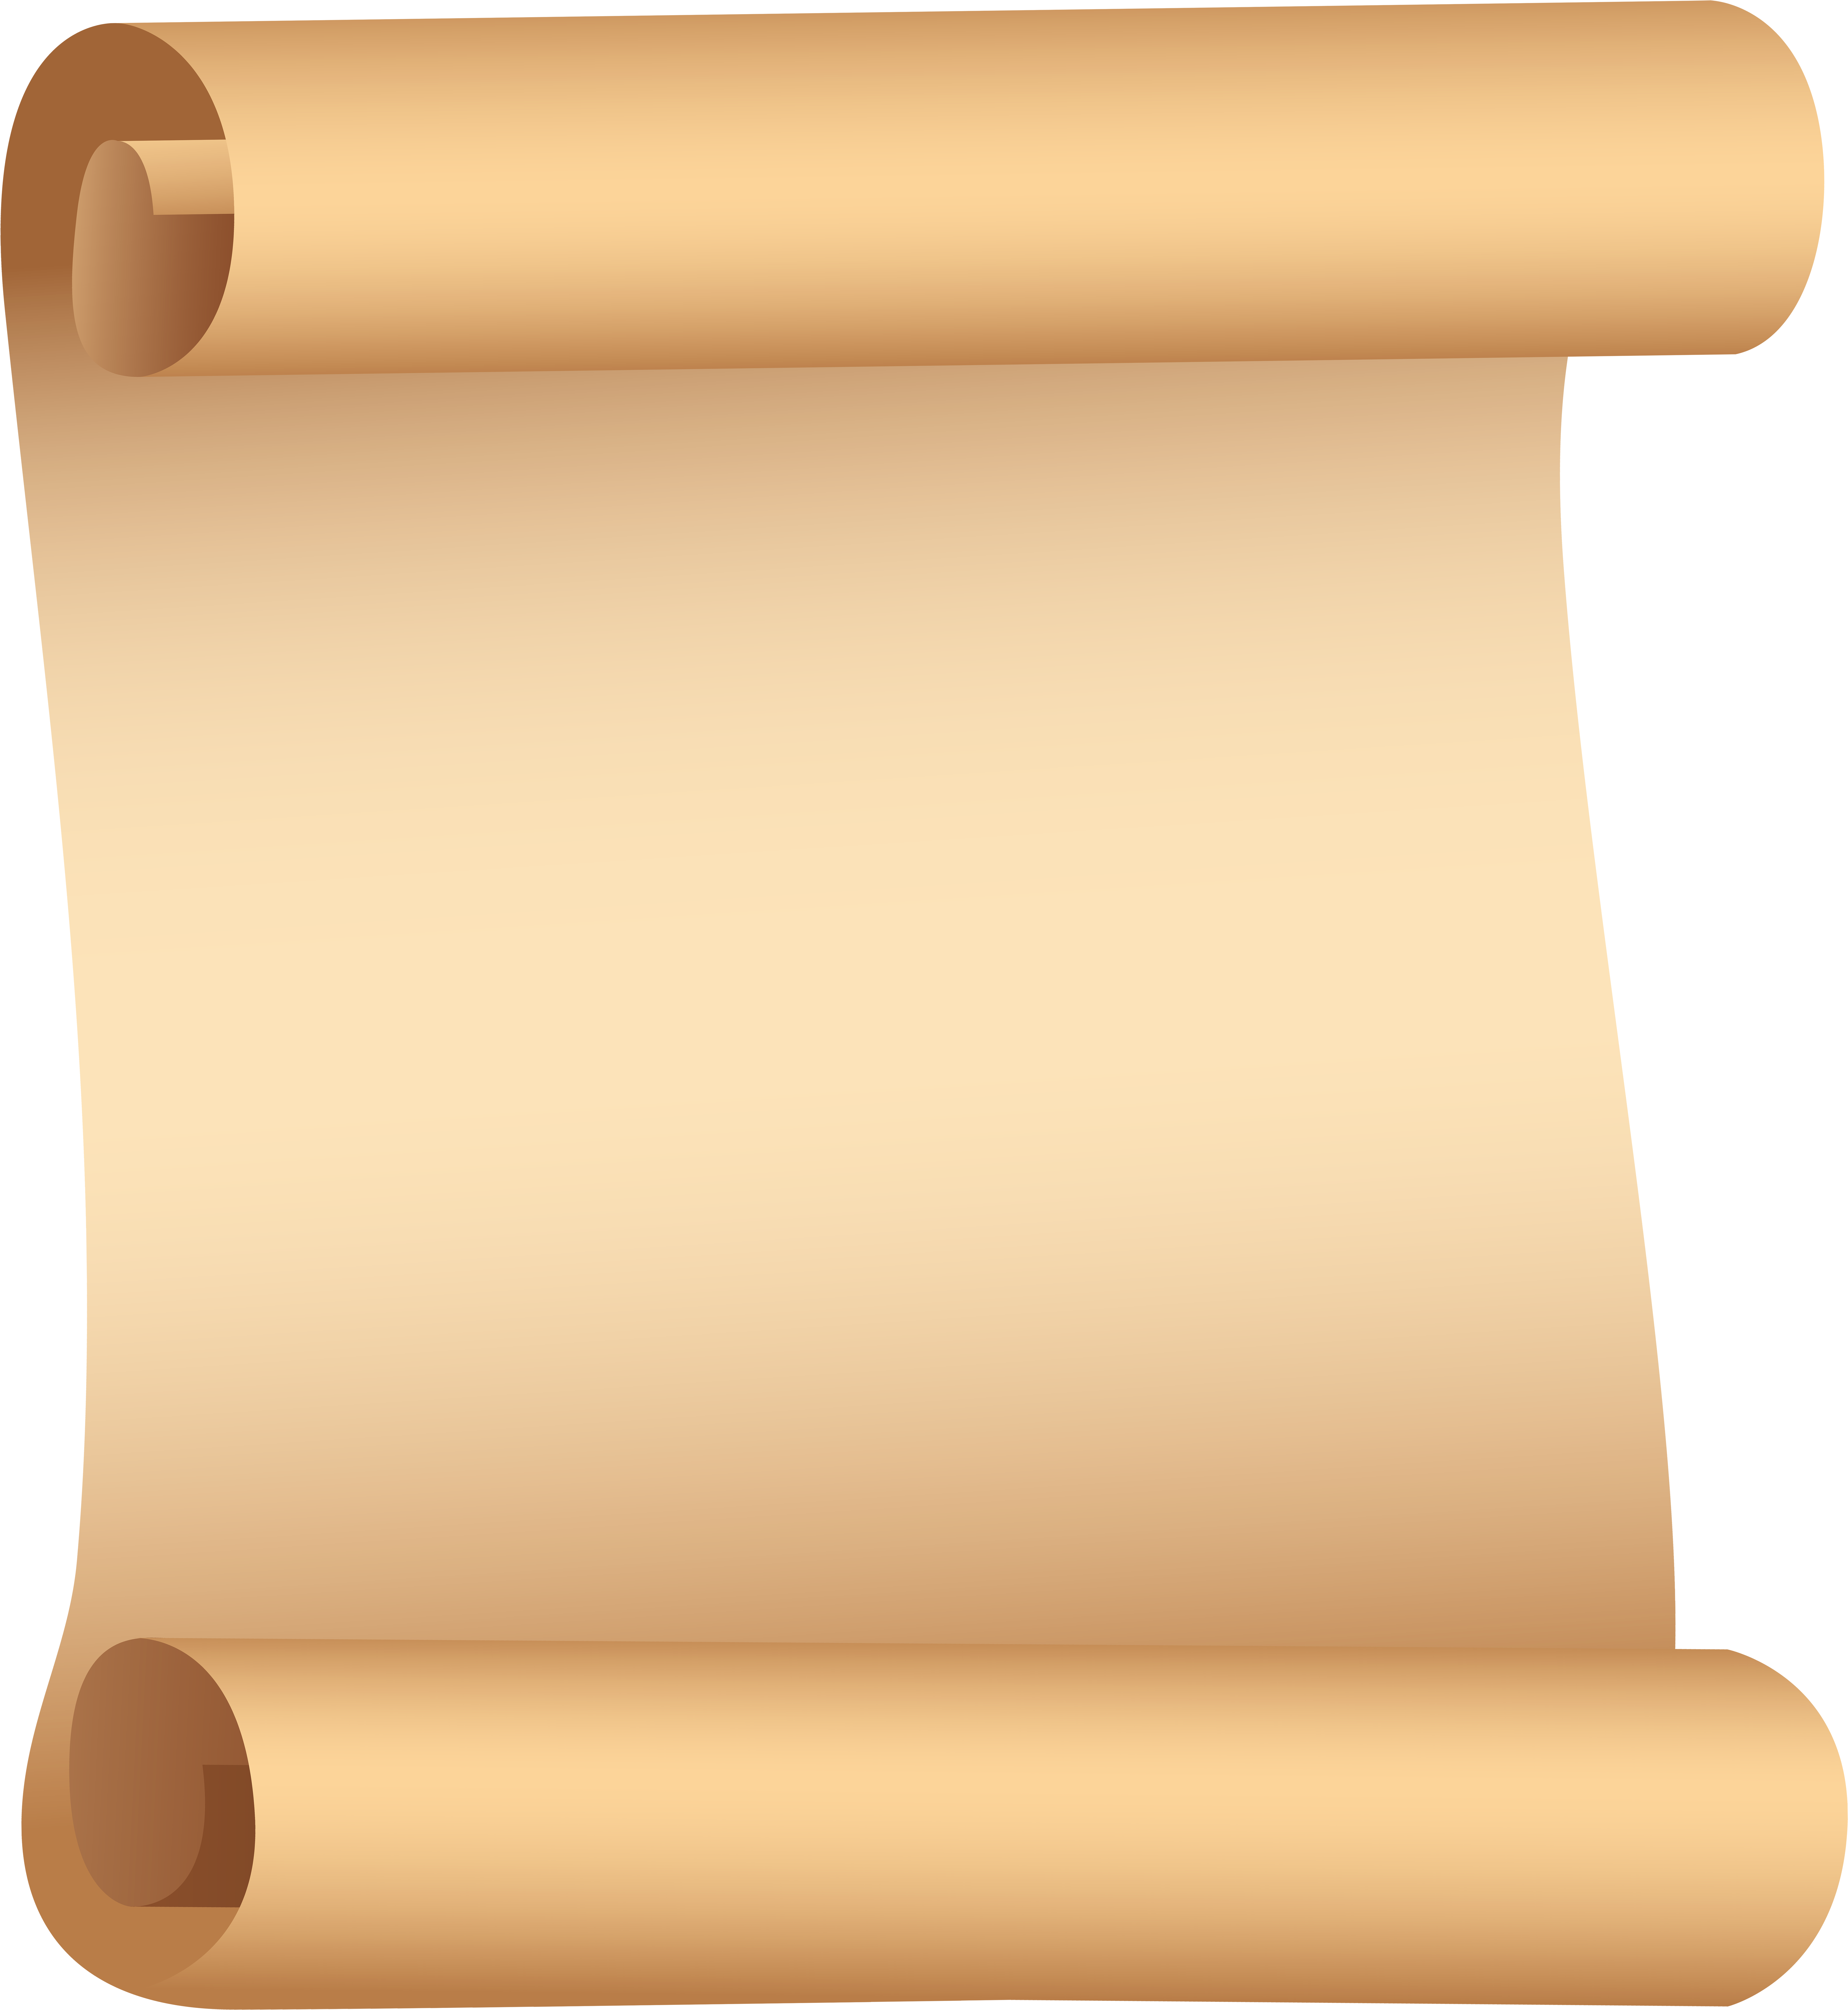 Download this image clipart. Paper scroll png image download